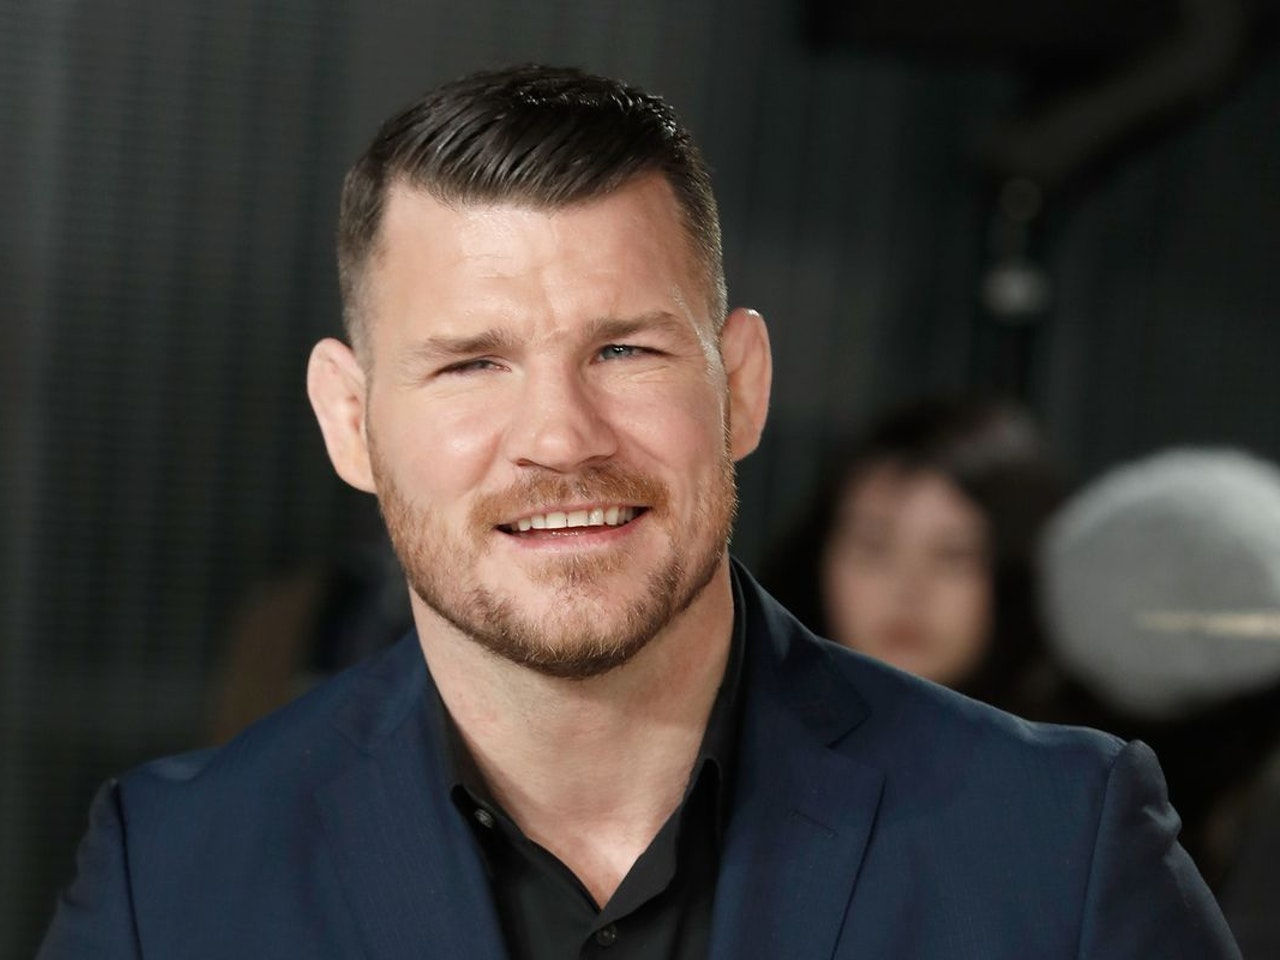 """Season 1 -""""Athletic Heroes"""" New Series of Interviews (U.K) - UFC Champion Michael Bisping / Nouvelle Série """"Coeurs de Champions"""" avec Champion UFC Michael Bisping (Royaume-Uni)"""